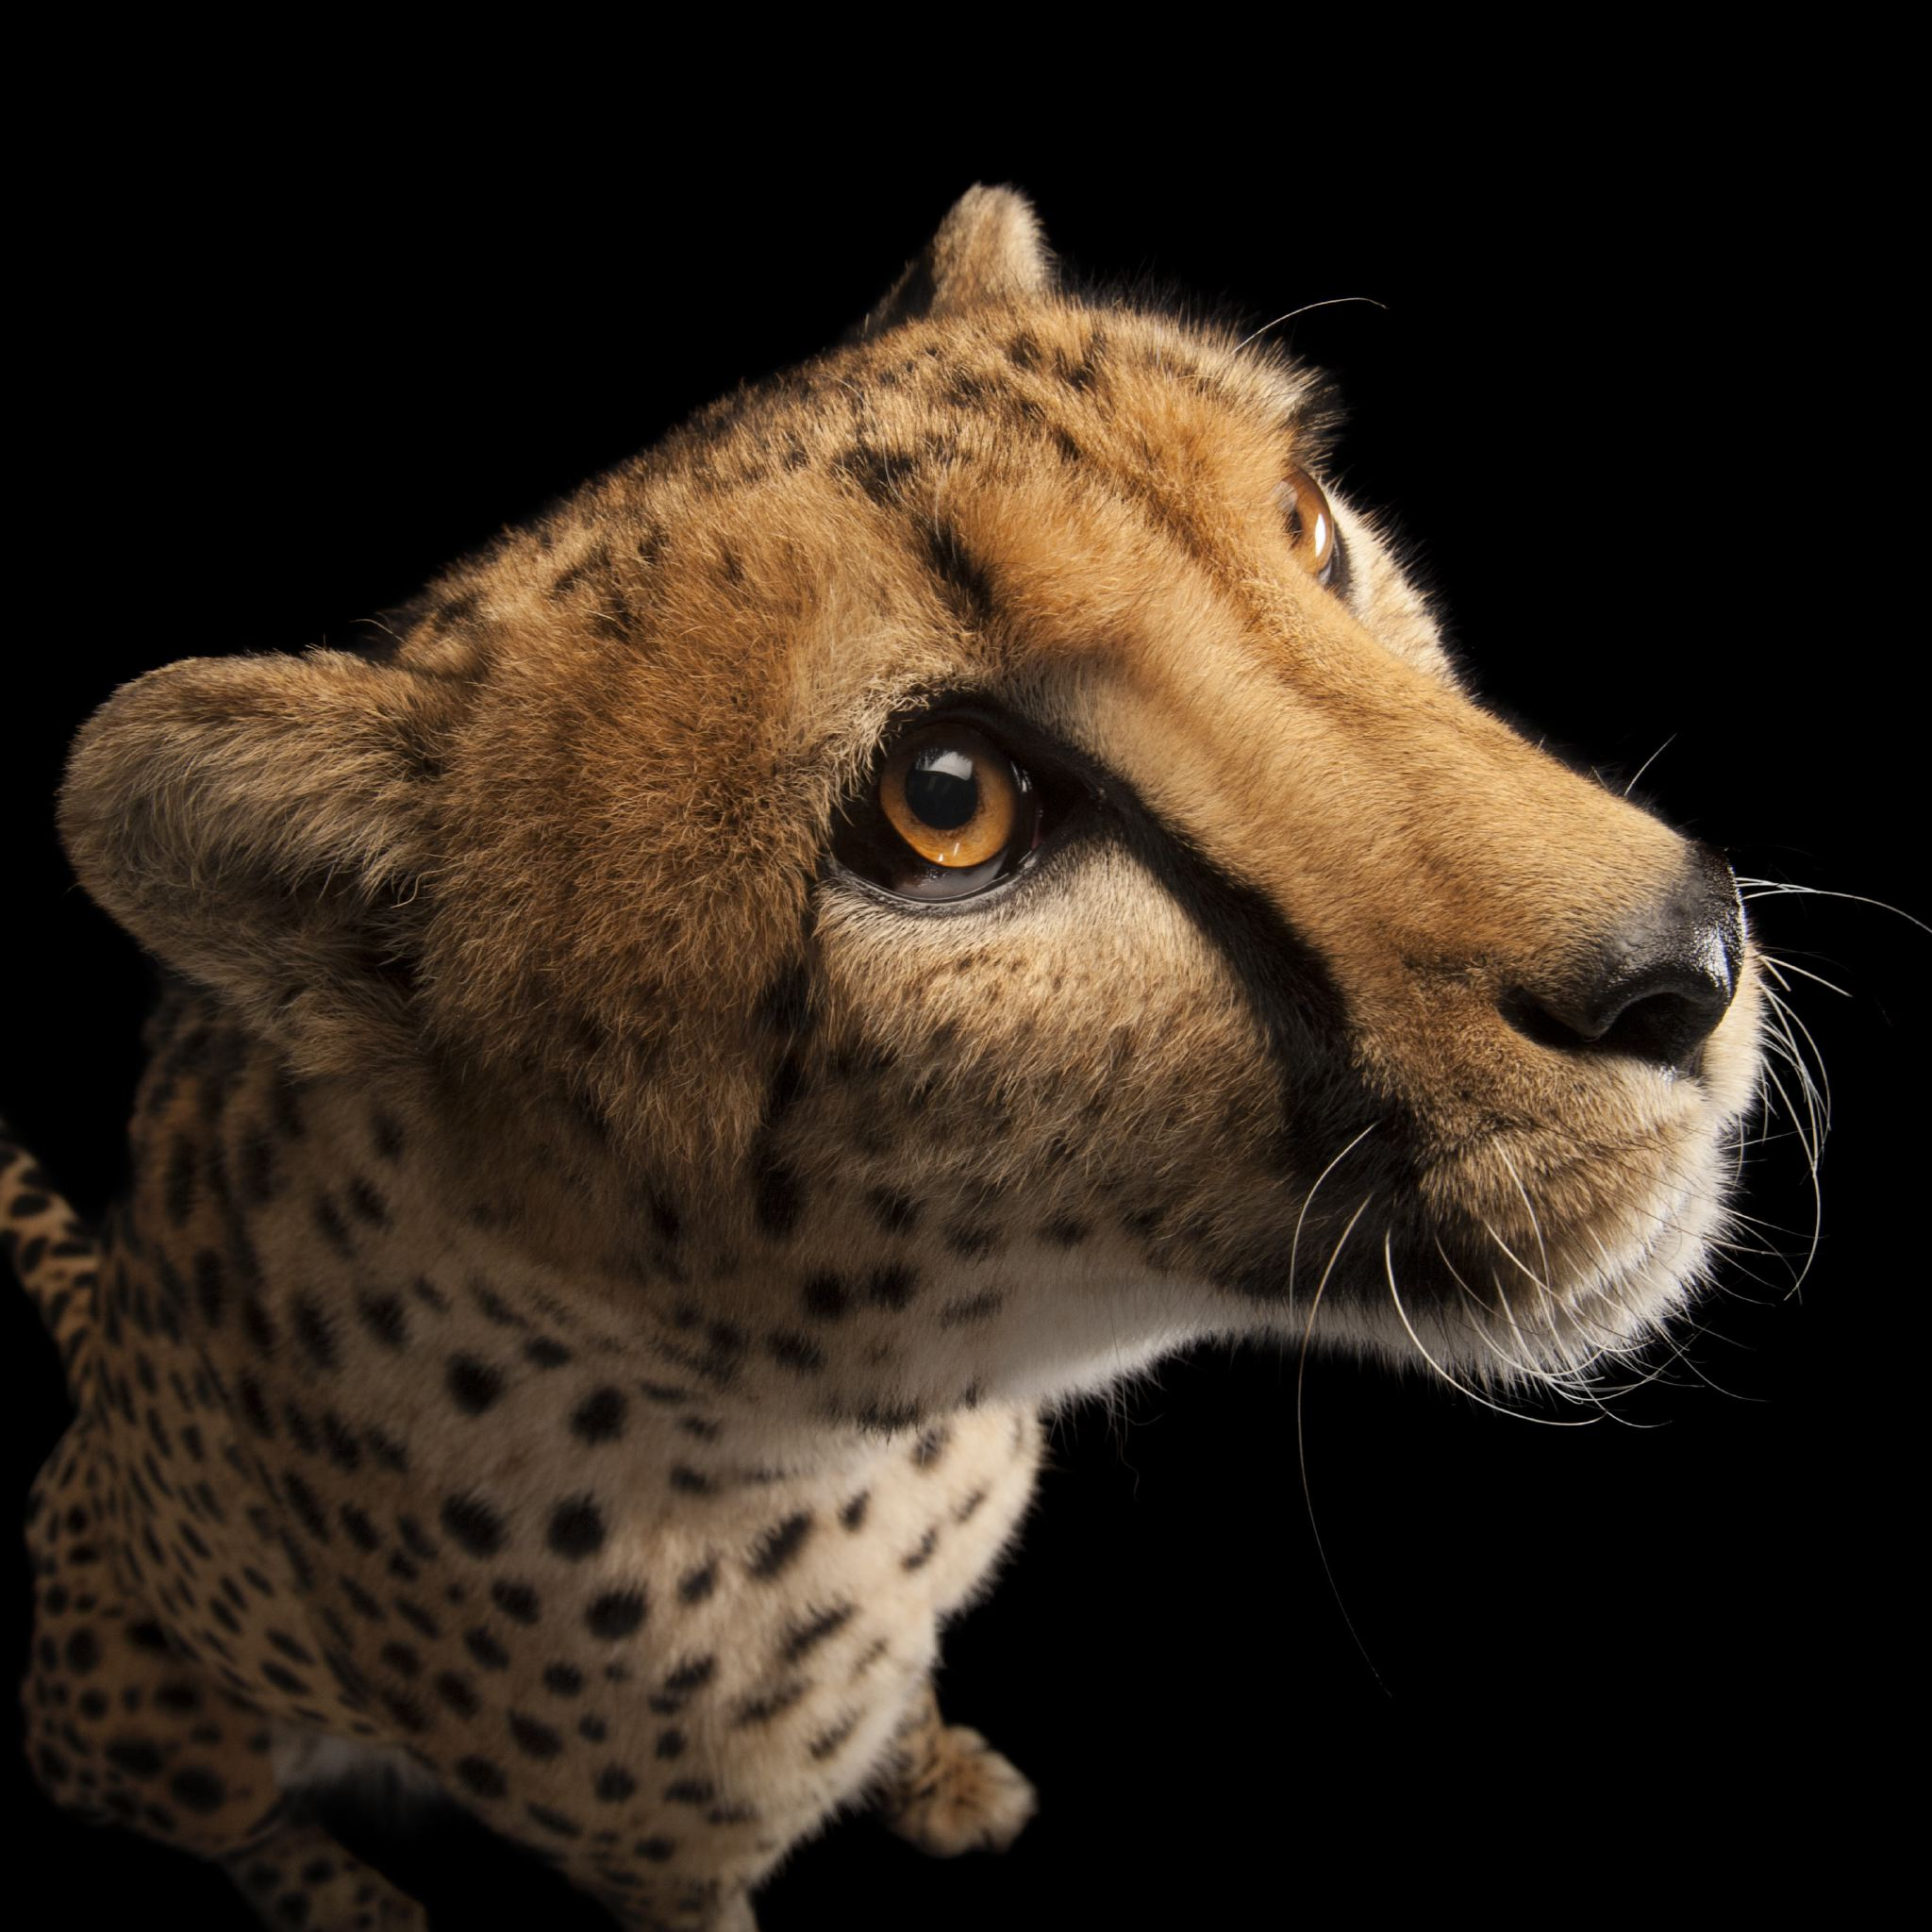 The cheetah is in more trouble than originally thought.